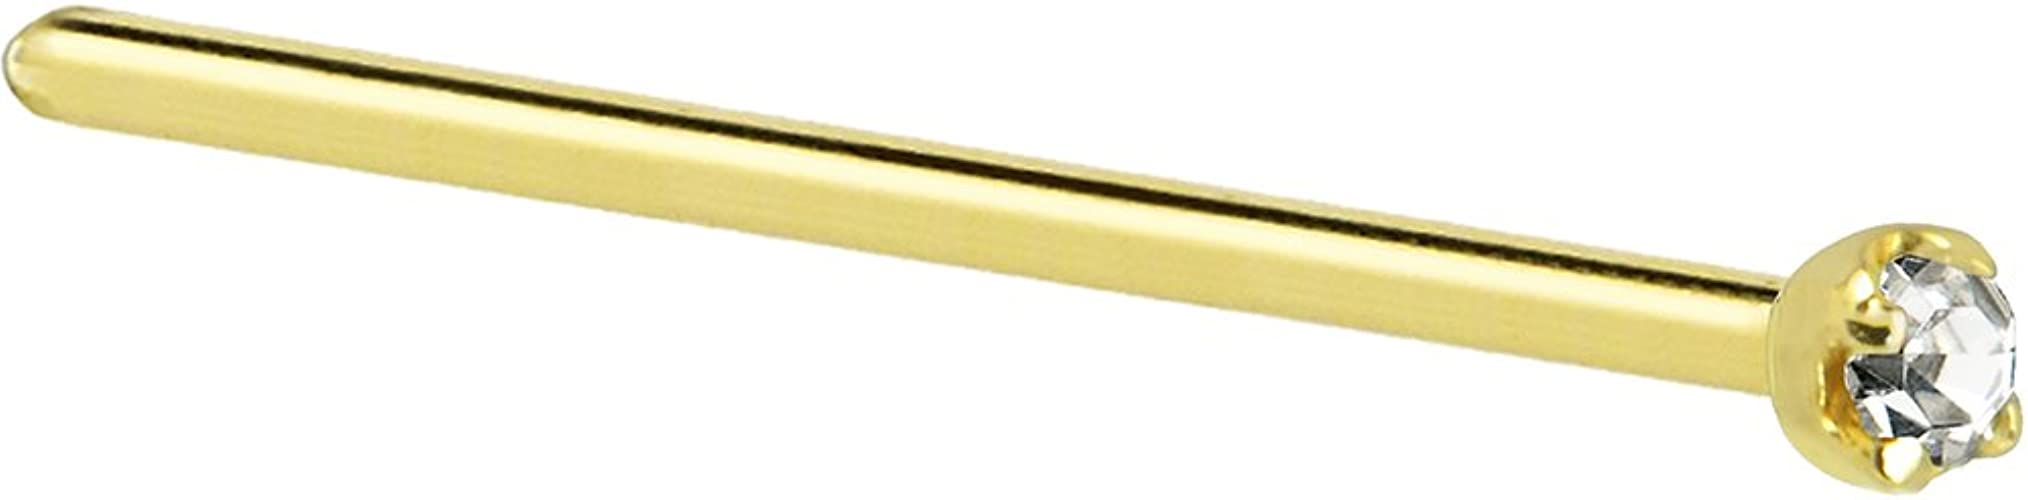 Body Candy Solid 14k Yellow Gold 1.5mm 0.015 cttw Genuine Diamond Straight Fishtail Nose Stud Ring 20 Gauge 17mm G-582